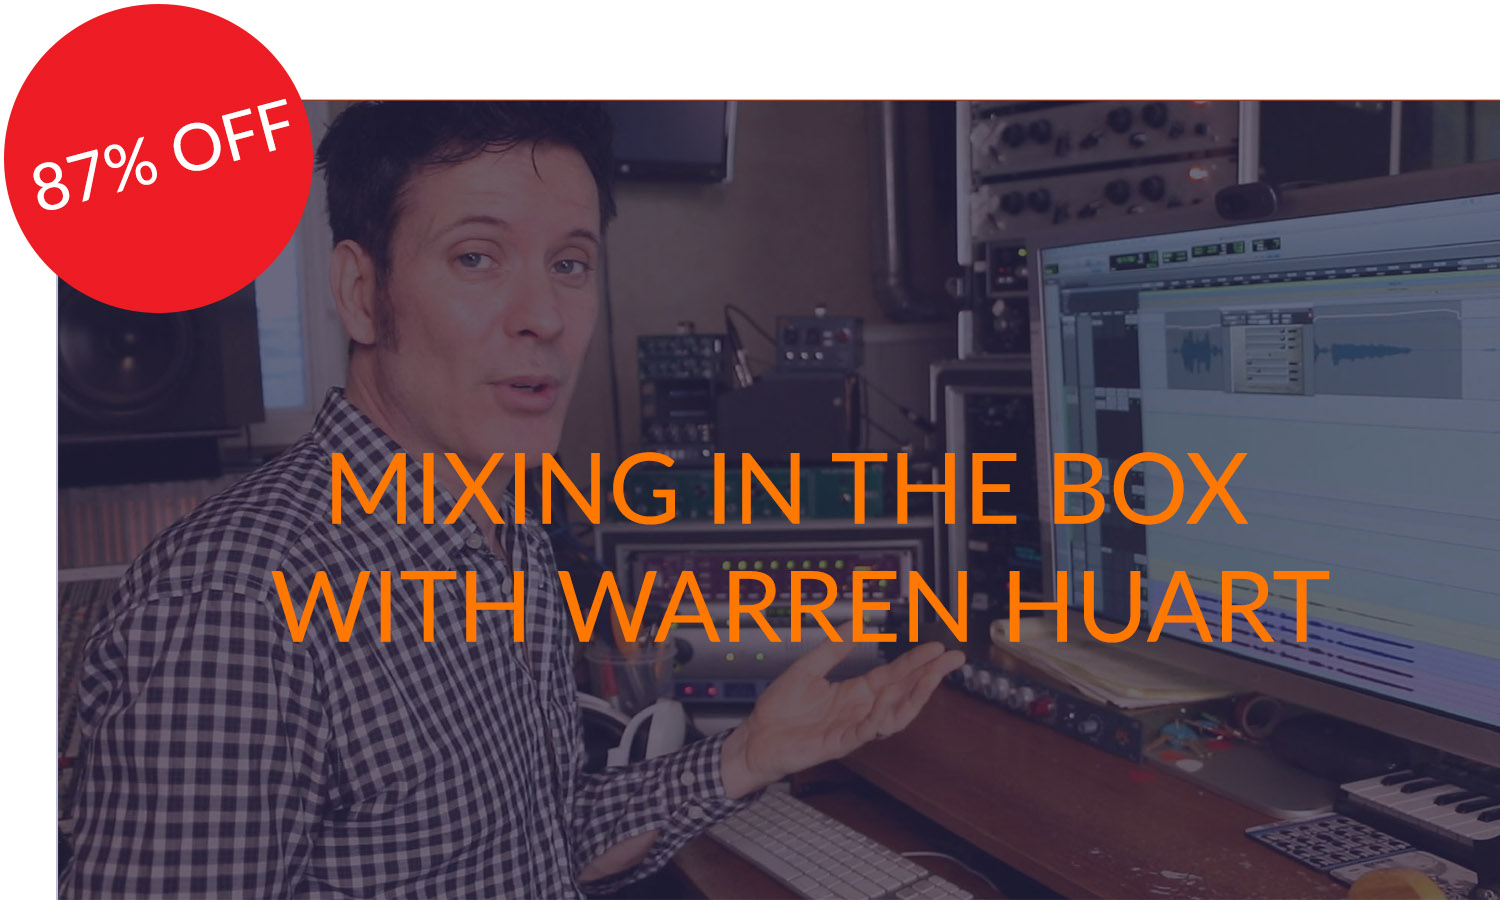 mixing-in-the-box-with-Warren-Huart-1